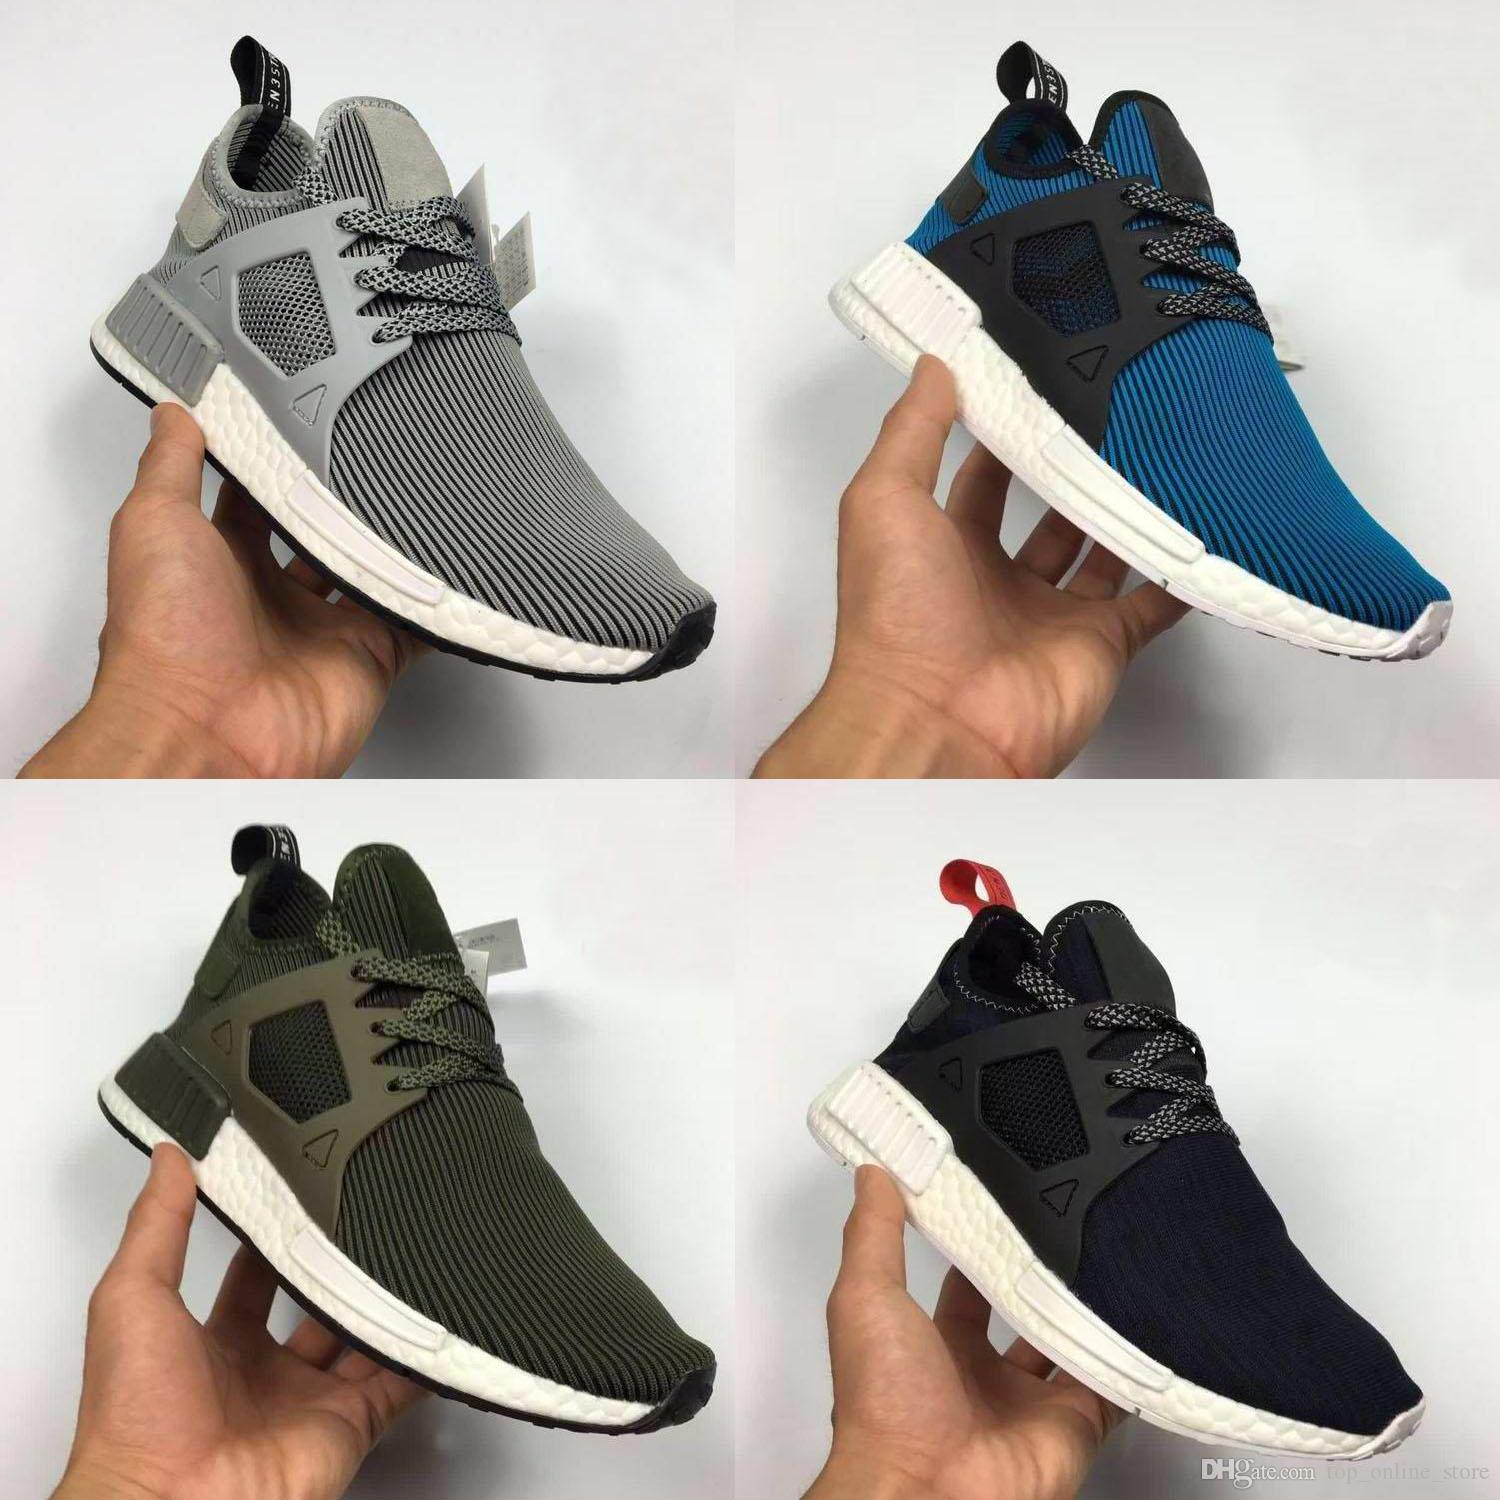 2f5b5e3046576 NMD XR1 Glitch Black White Blue Camo Pack Ultra Boost For Men Women Running  Sports Shoes Come With Receipt Bag Sock Box Sports Shorts Shoe Shop From ...